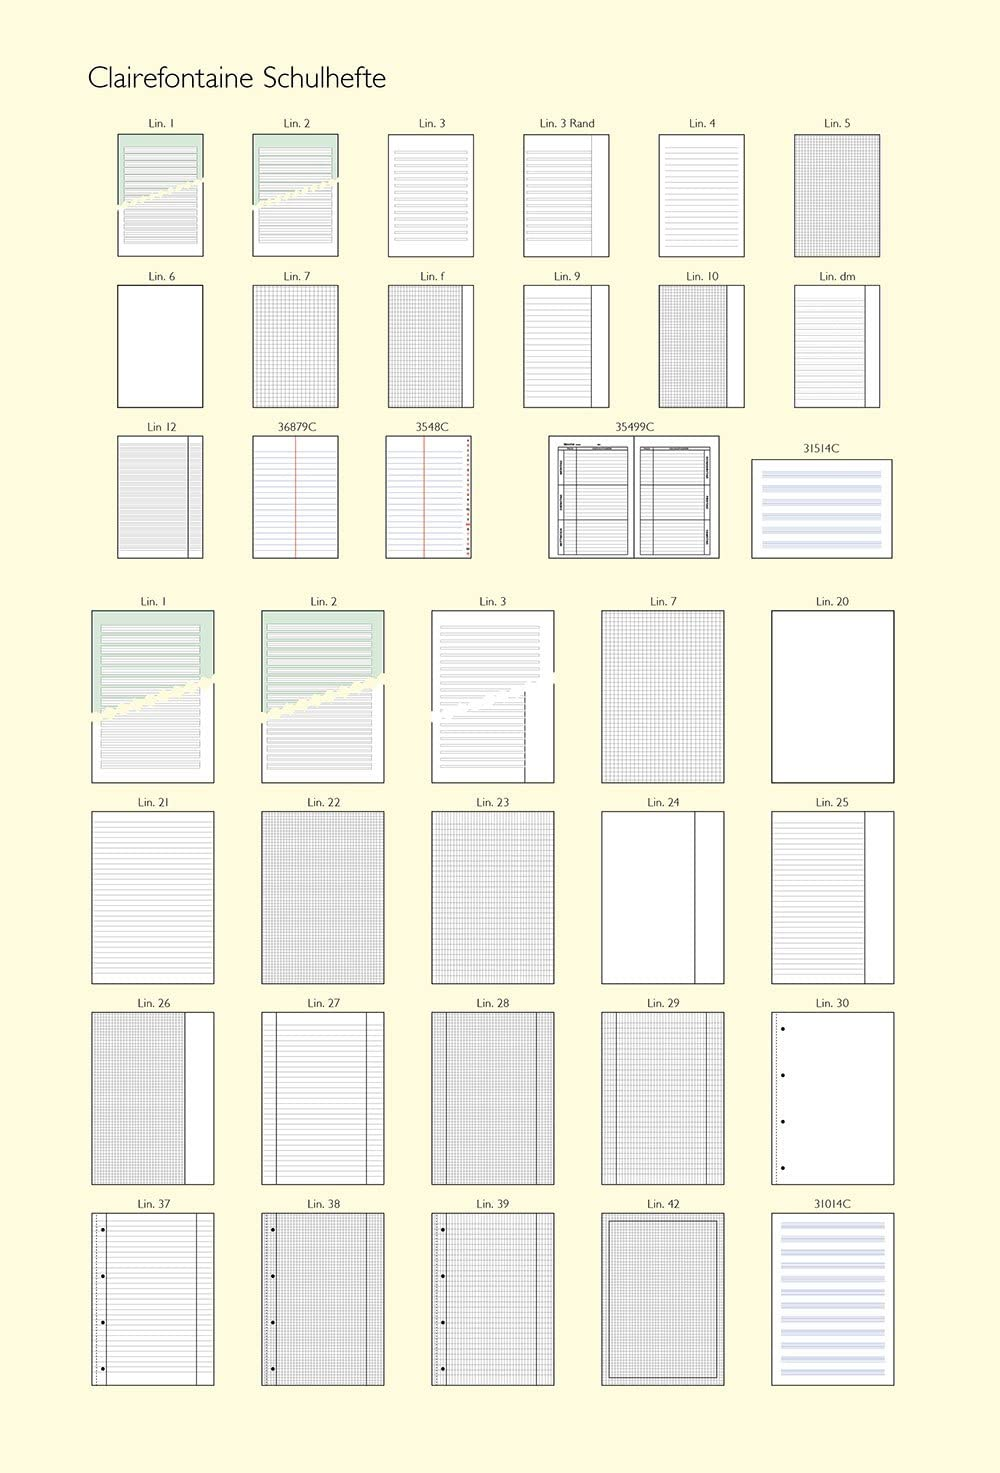 200 Sheets S/éy/ès Ruled White Clairefontaine A4 Single Sheets Multi-Punched